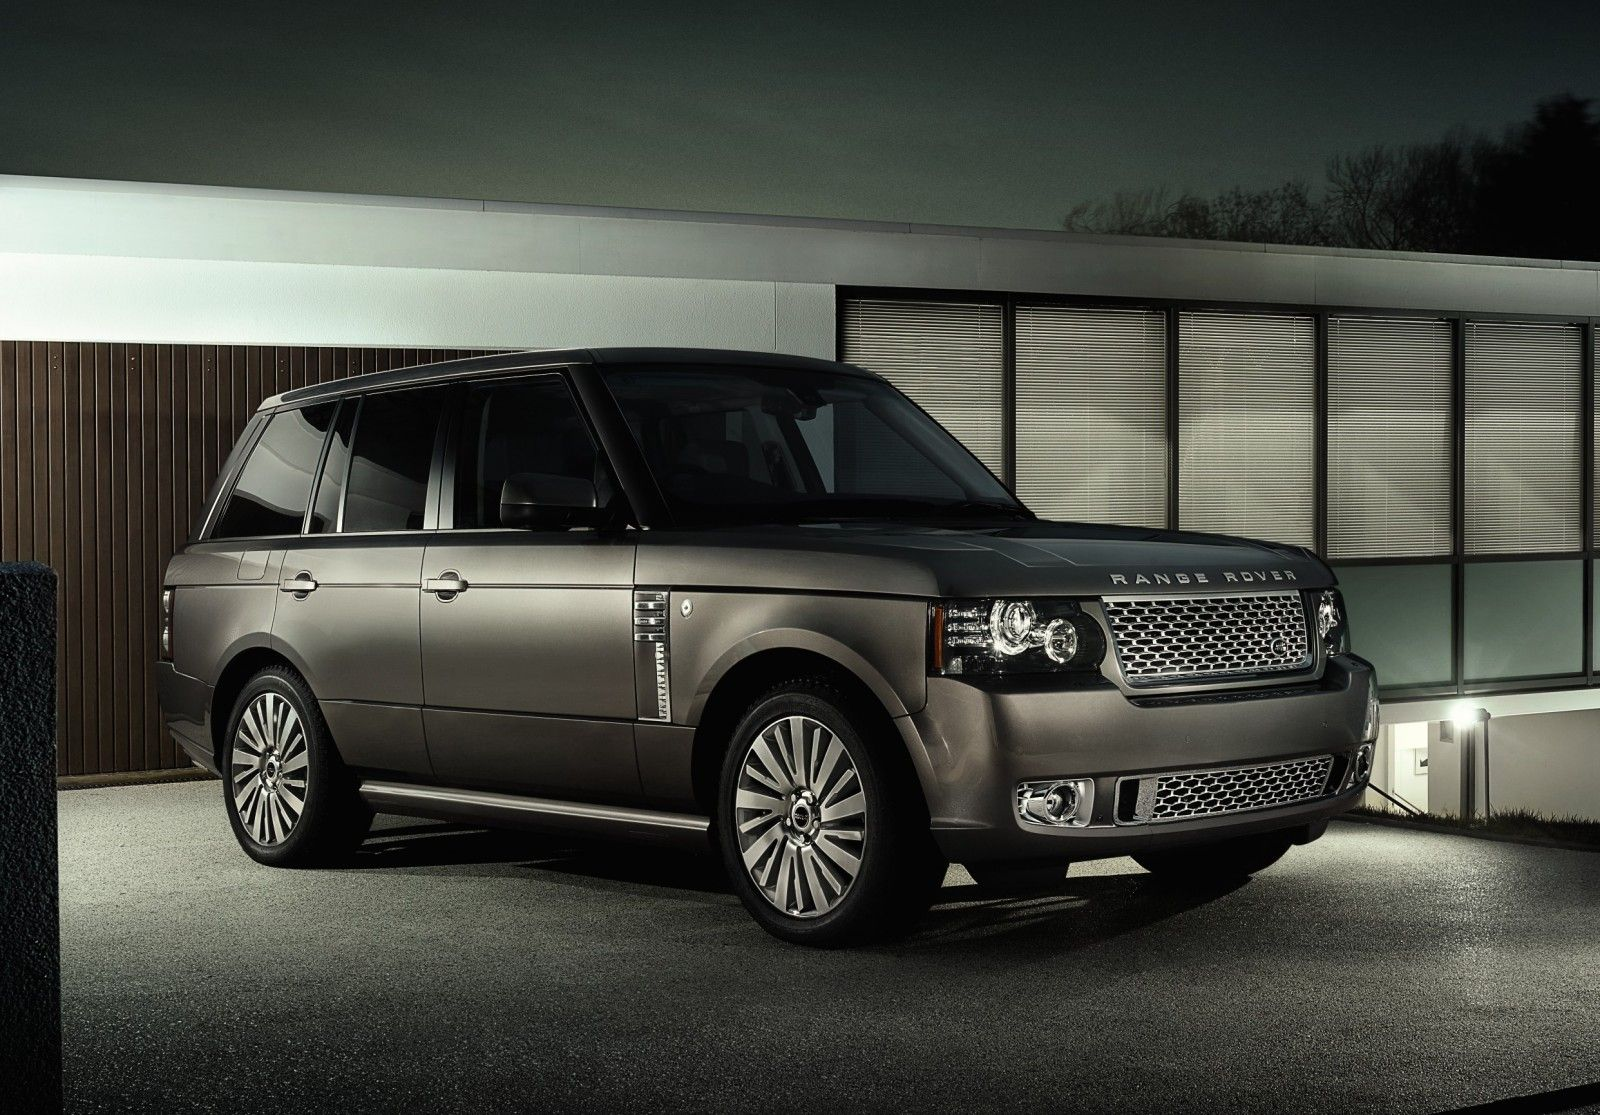 Land Rover Range Rover Autobiography Ultimate Edition | Automobile ...